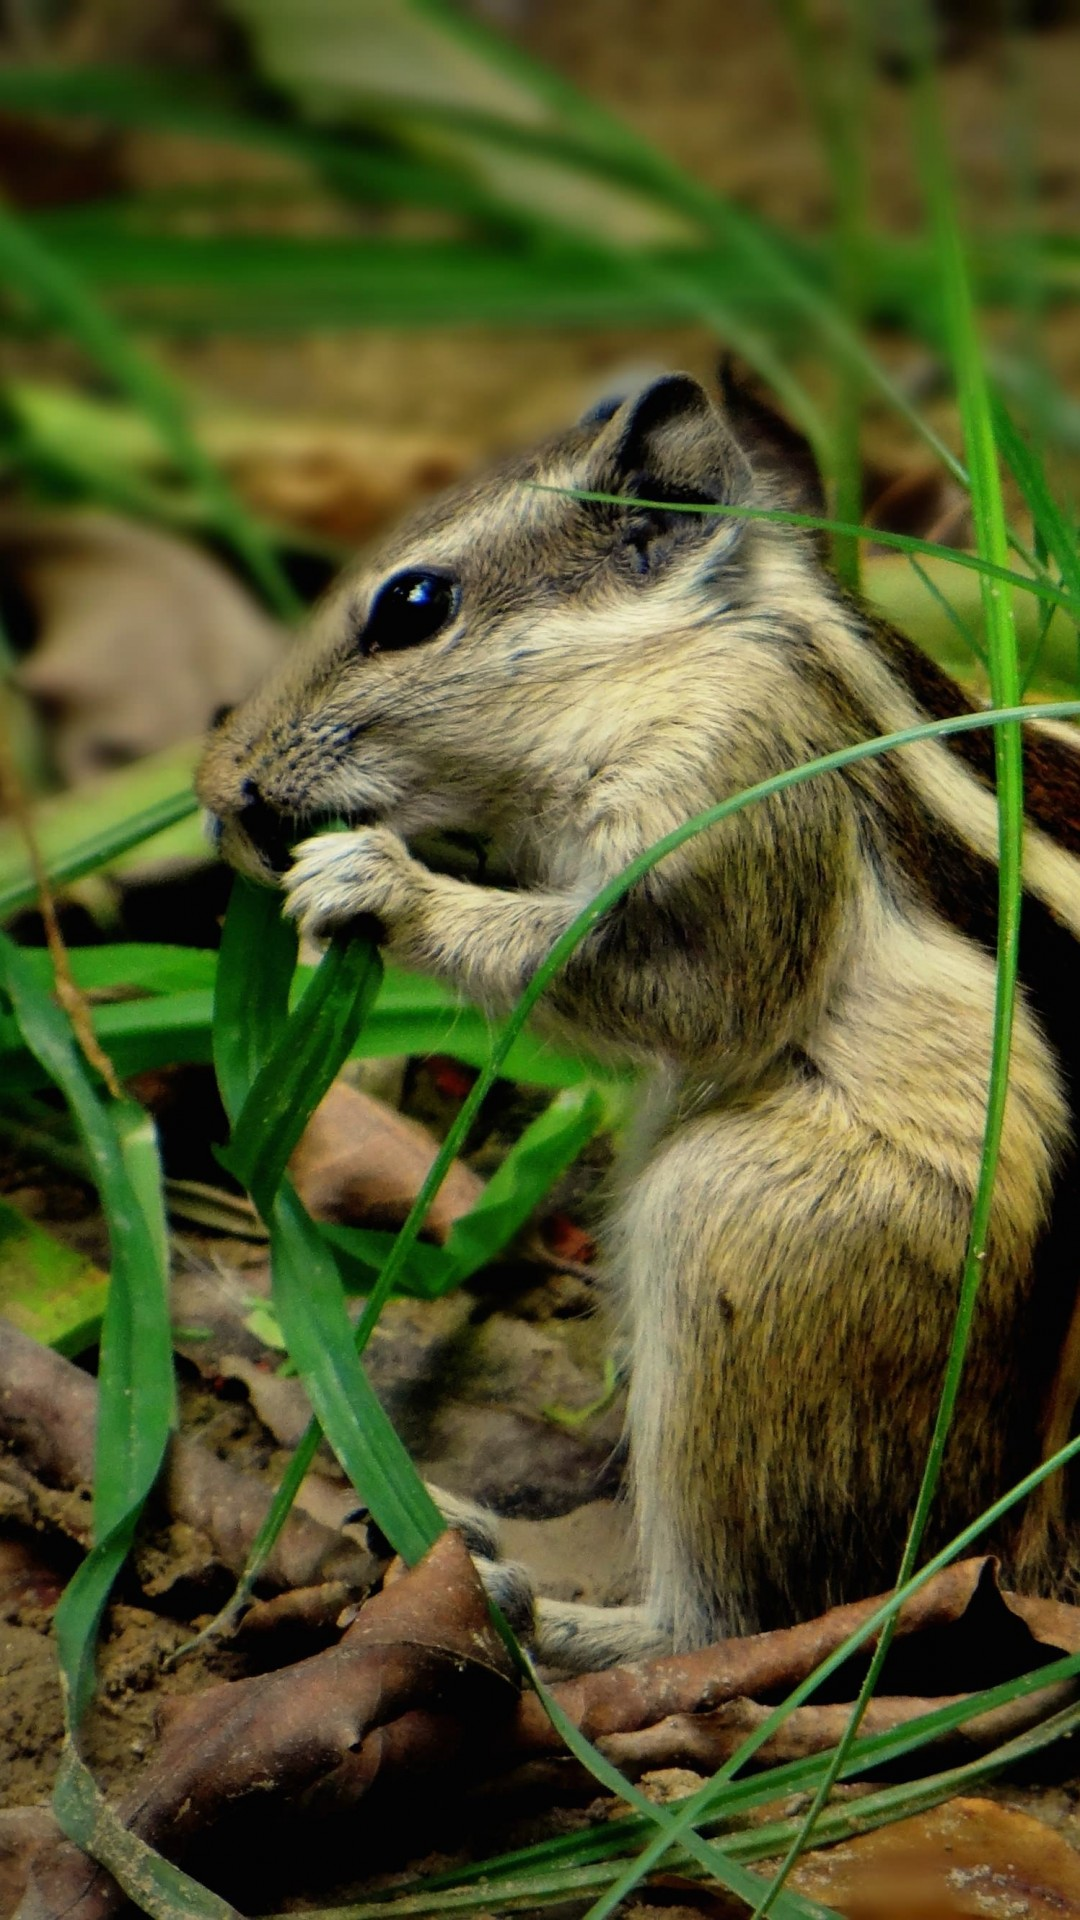 Chipmunk In The Grass Wallpaper for SAMSUNG Galaxy S4